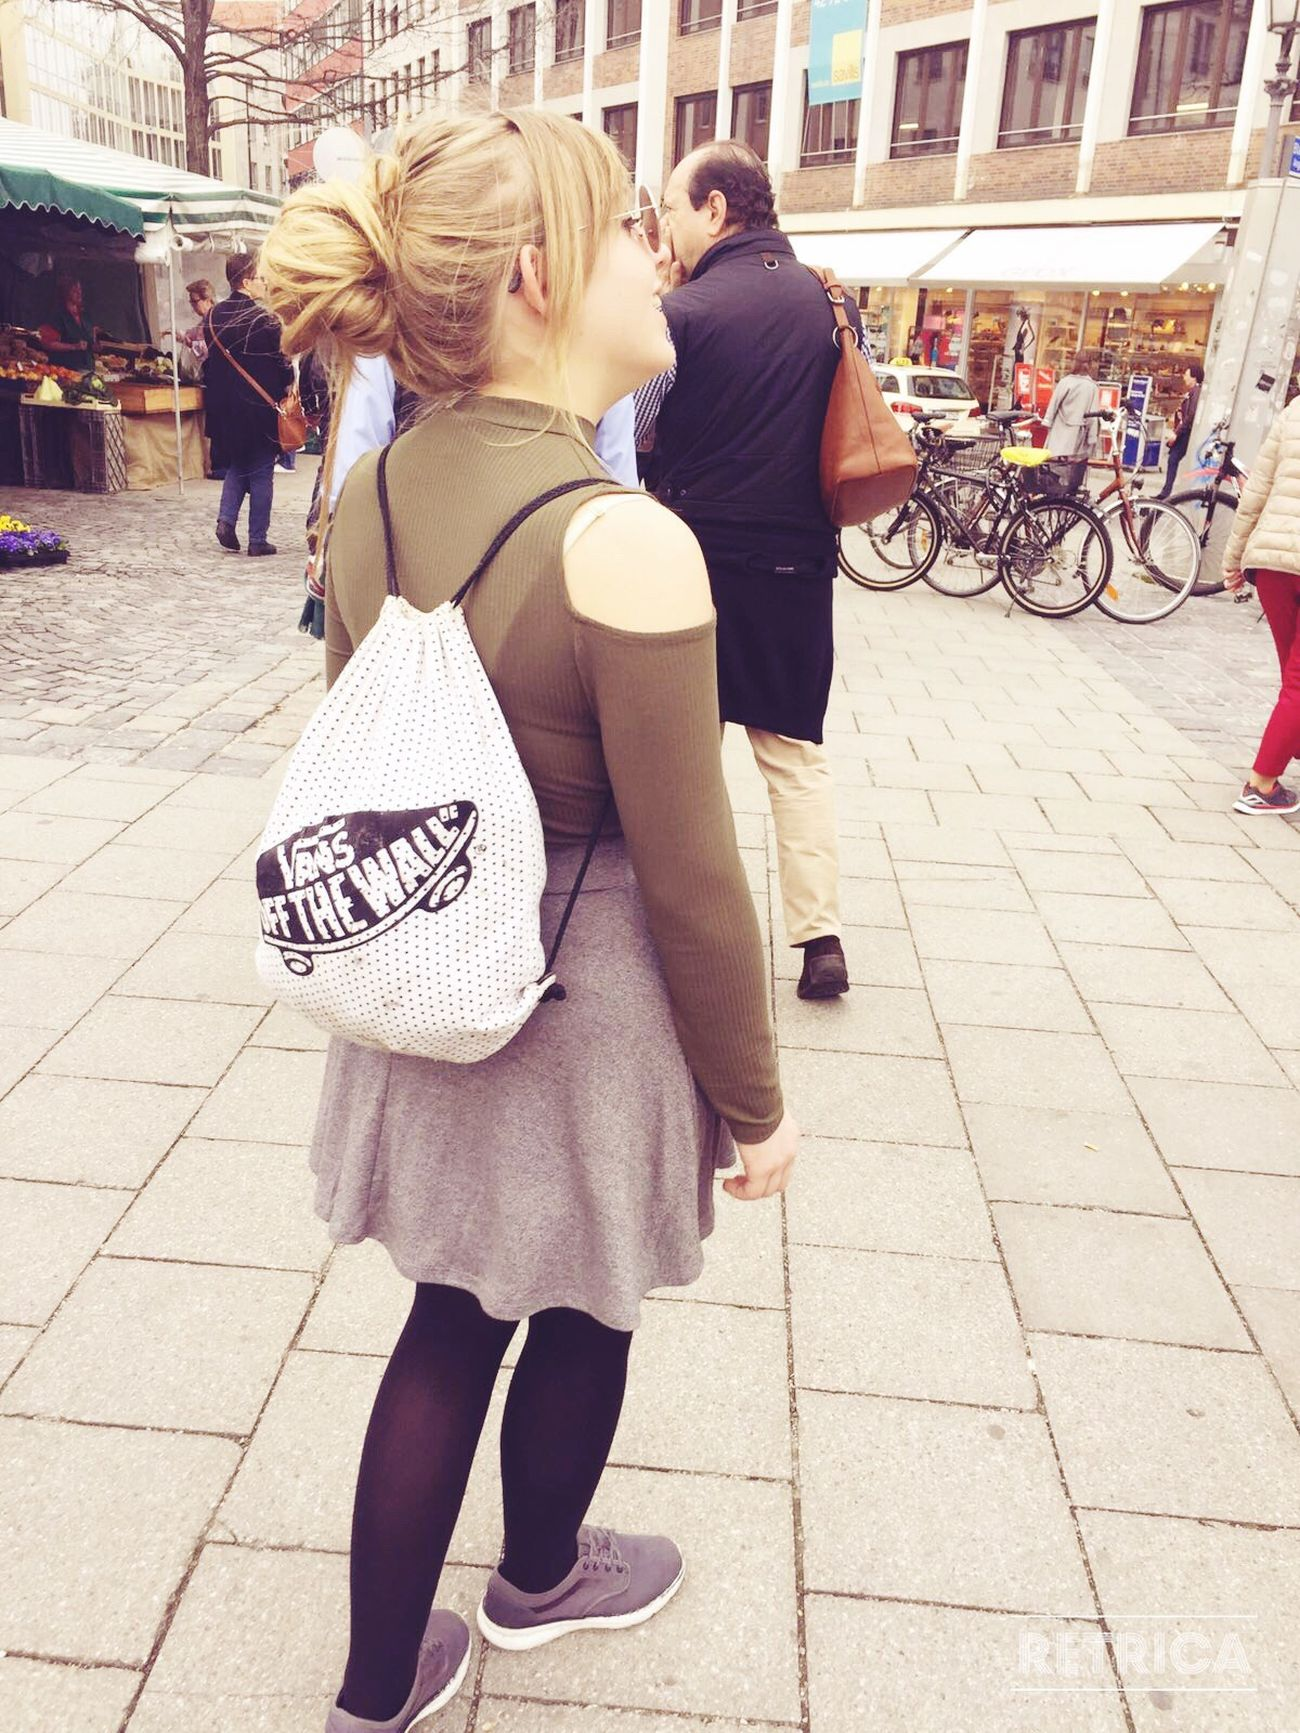 Street City Real People Holiday Person Outdoors Vans Off The Wall Vans München Chilling NeverGrowUp Keep Smiling